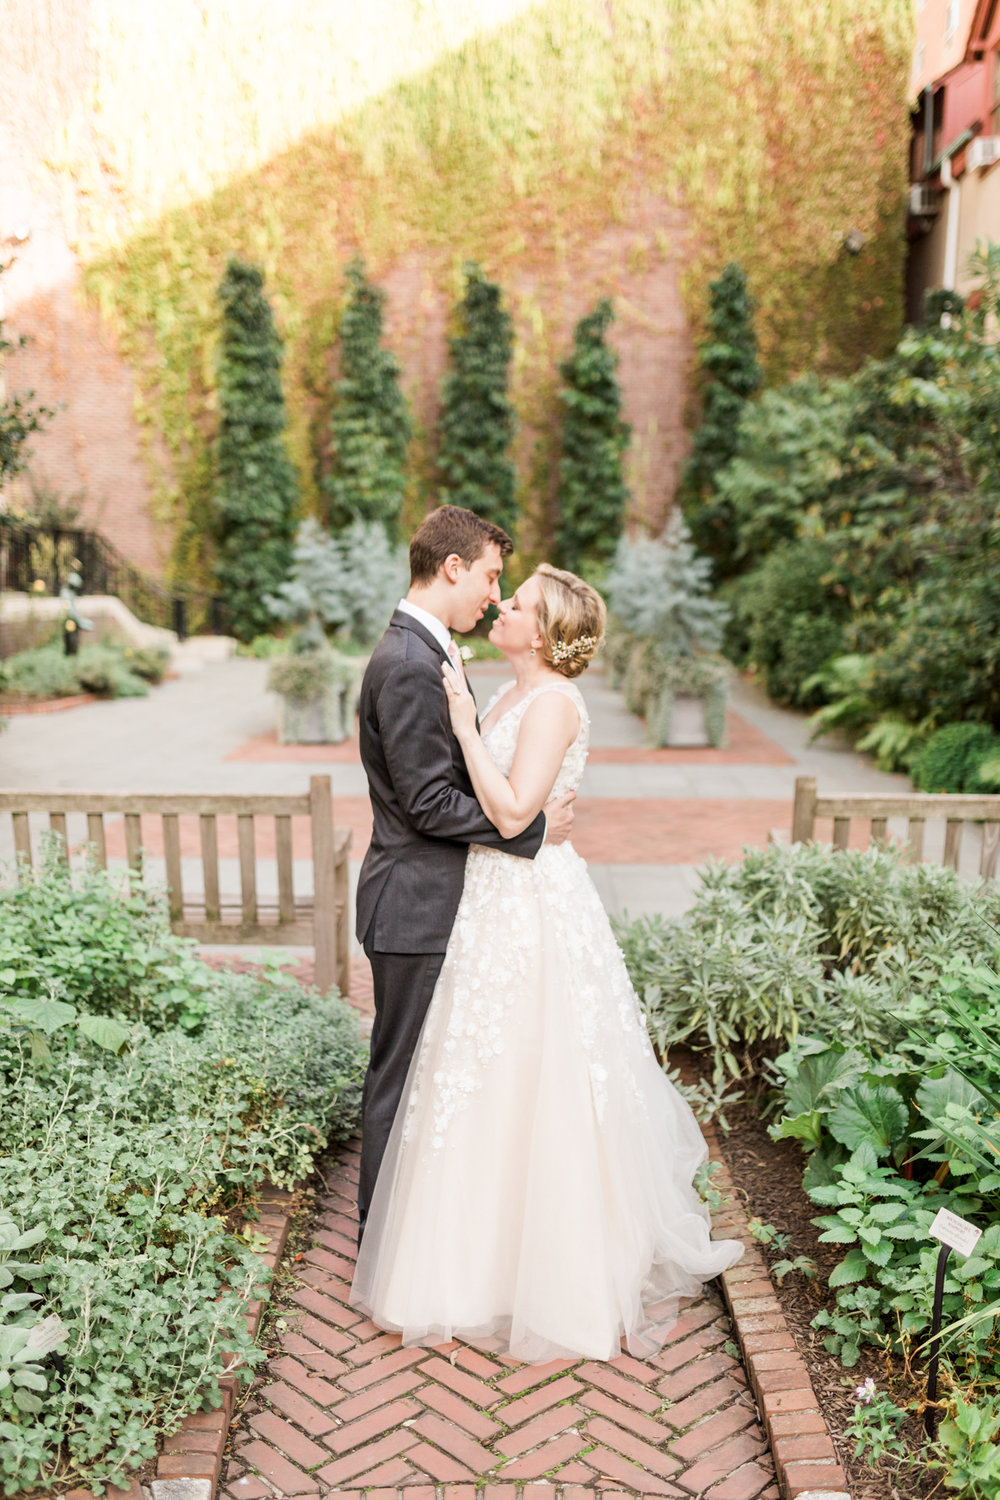 Blush, white, and gold accent this darling College of Physicians wedding in Philadelphia, Pennsylvania.